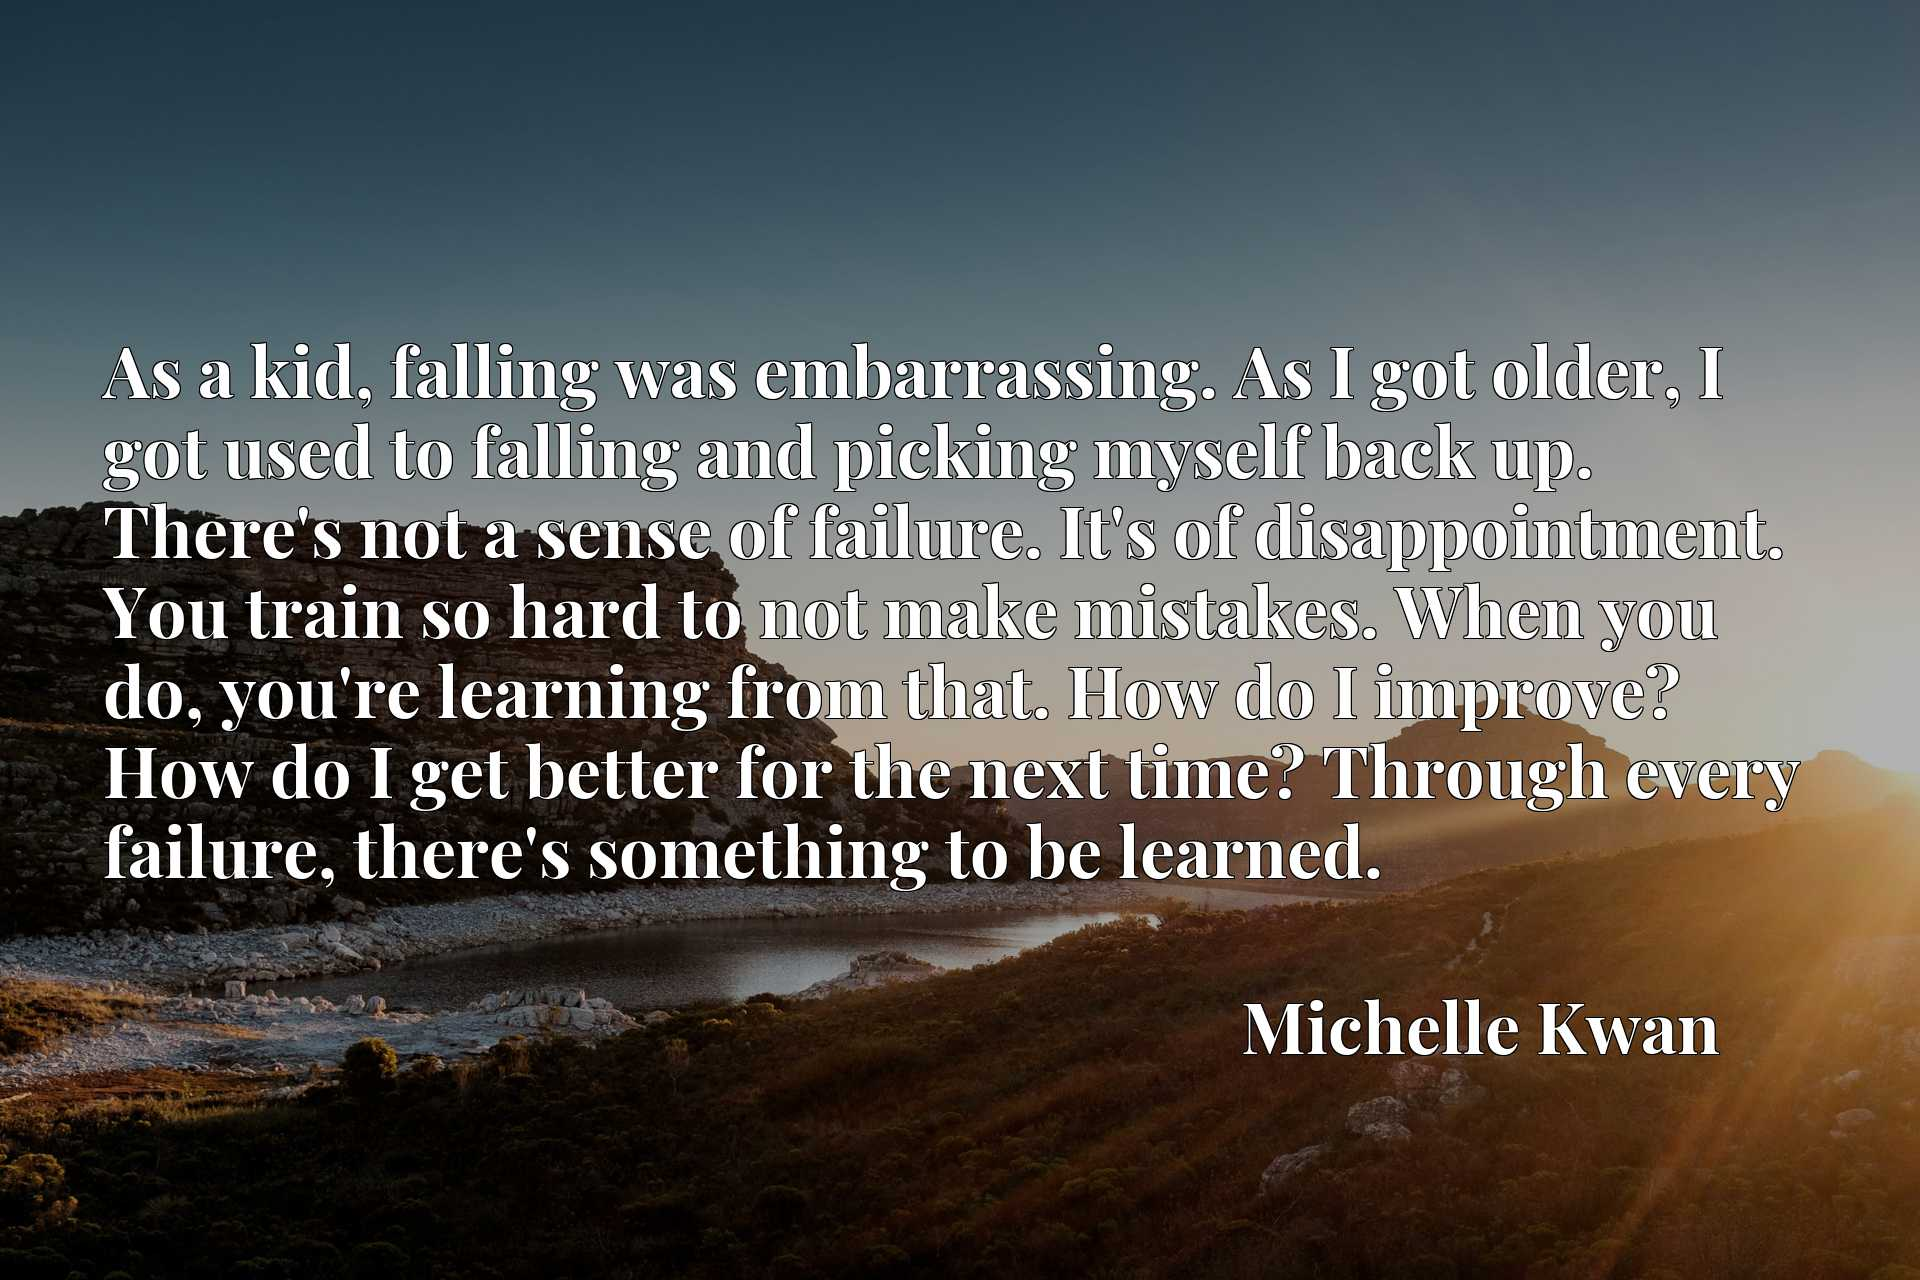 As a kid, falling was embarrassing. As I got older, I got used to falling and picking myself back up. There's not a sense of failure. It's of disappointment. You train so hard to not make mistakes. When you do, you're learning from that. How do I improve? How do I get better for the next time? Through every failure, there's something to be learned.